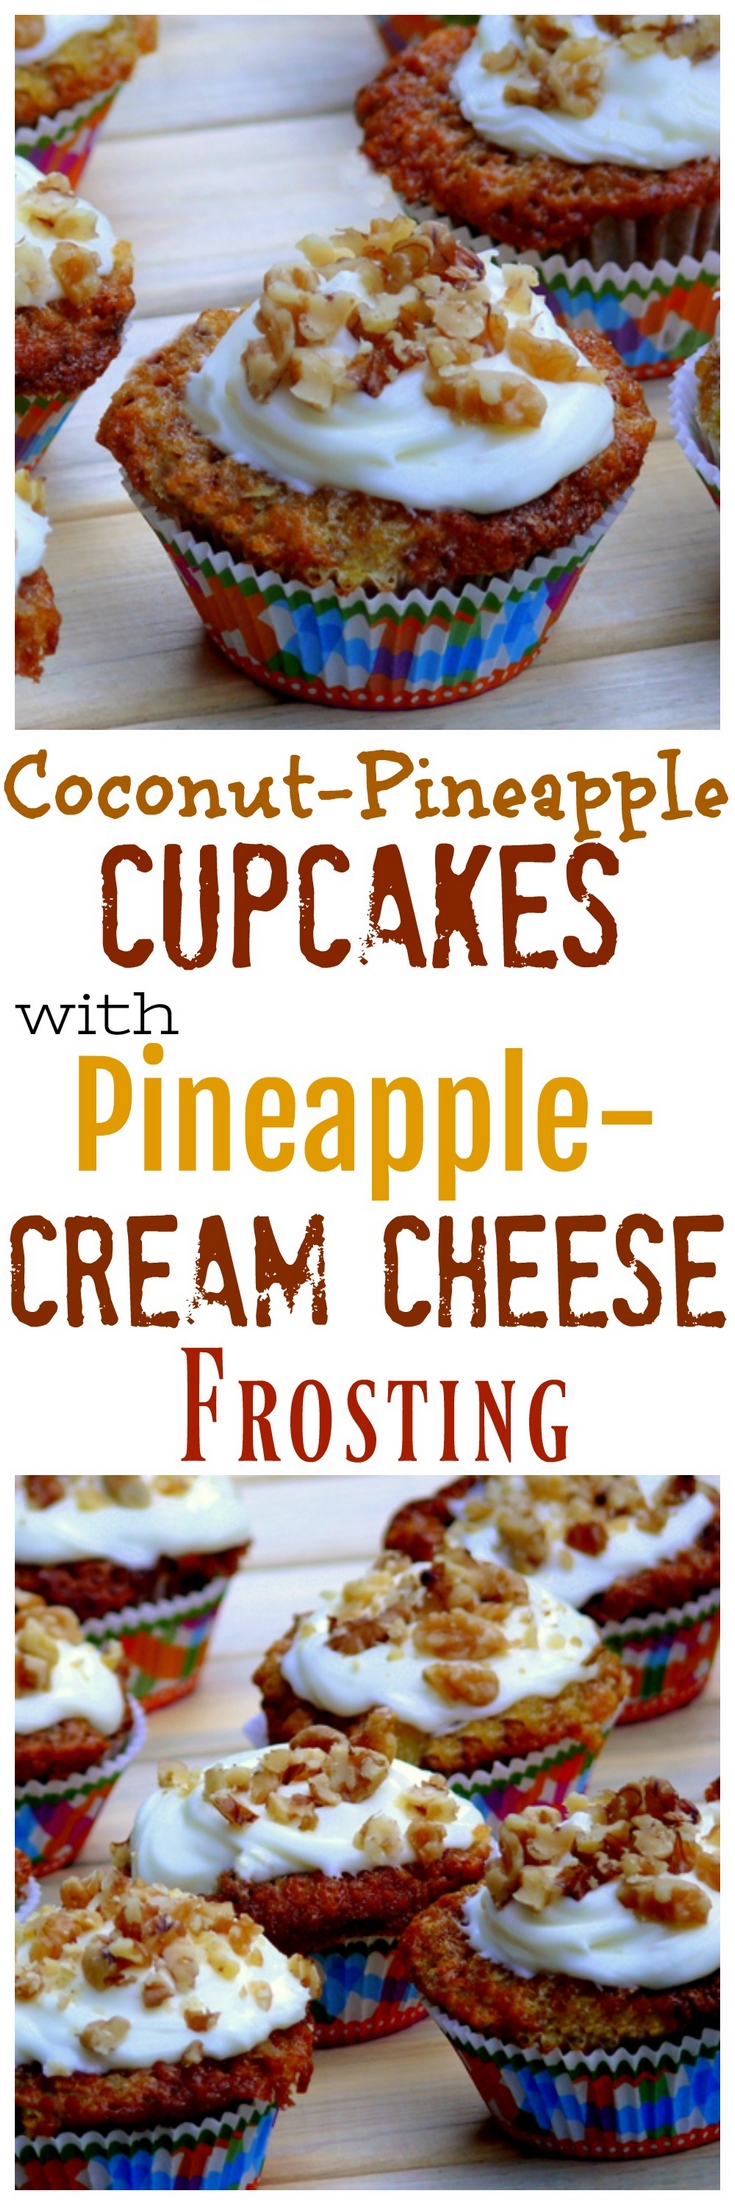 VIDEO + RECIPE: You will have to hide these Coconut-Pineapple Cupcakes with Pineapple-Cream Cheese Frosting from yourself. They are sticky, sweet and perfectly delicious. It's hard to describe with words just how yummy they taste. via @cmpollak1